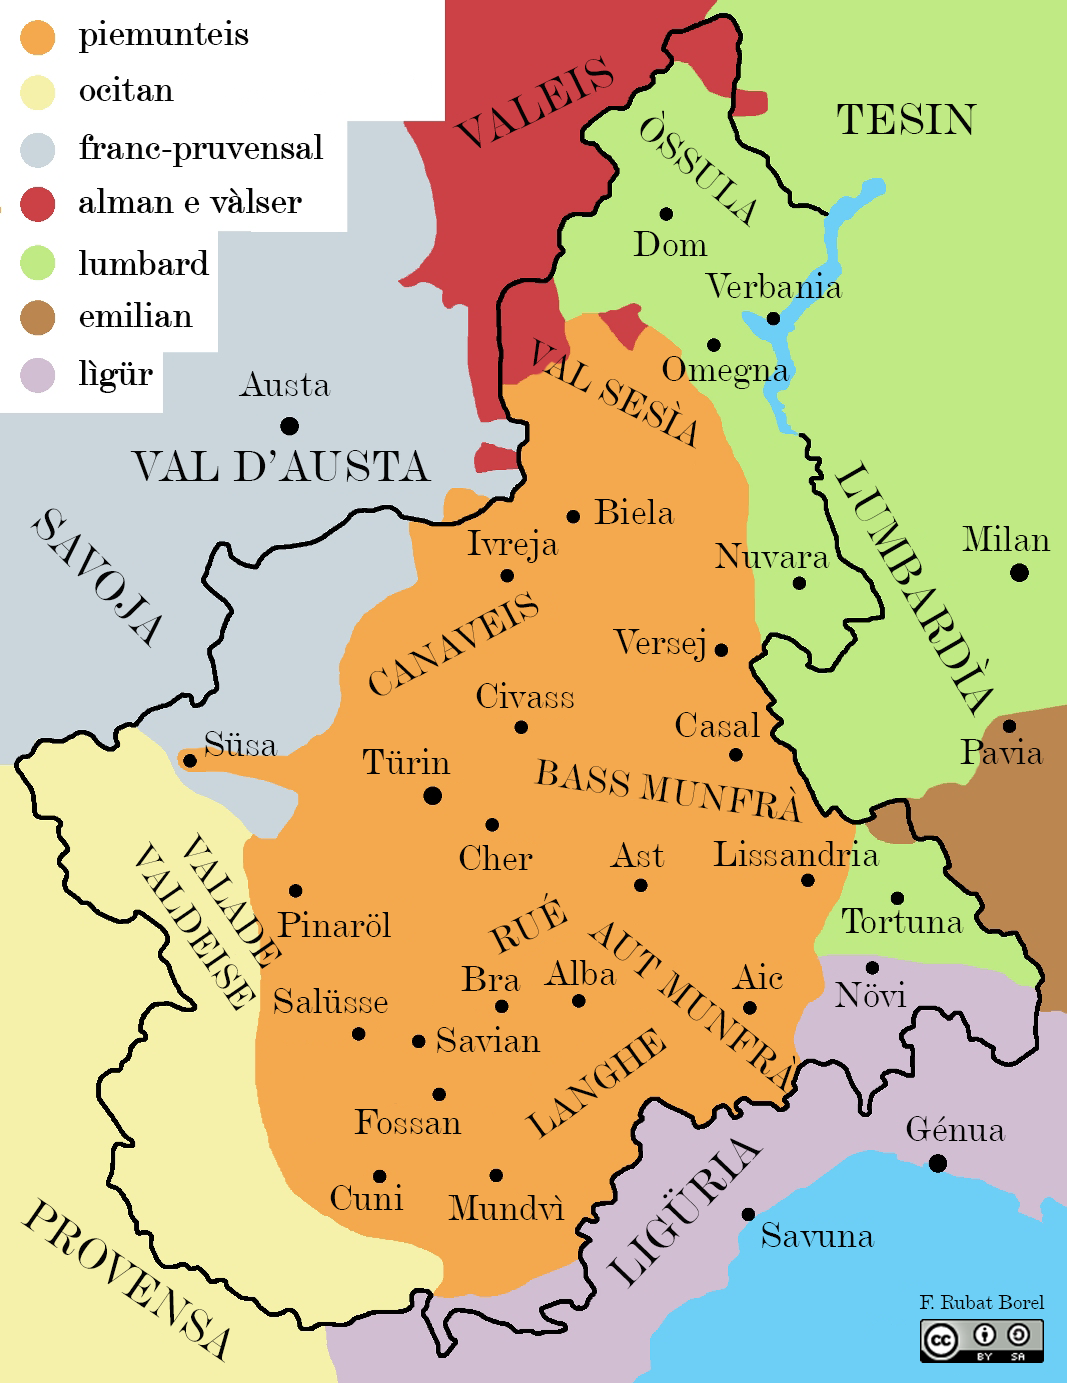 languages:mm_2017:map_piedmontese.png